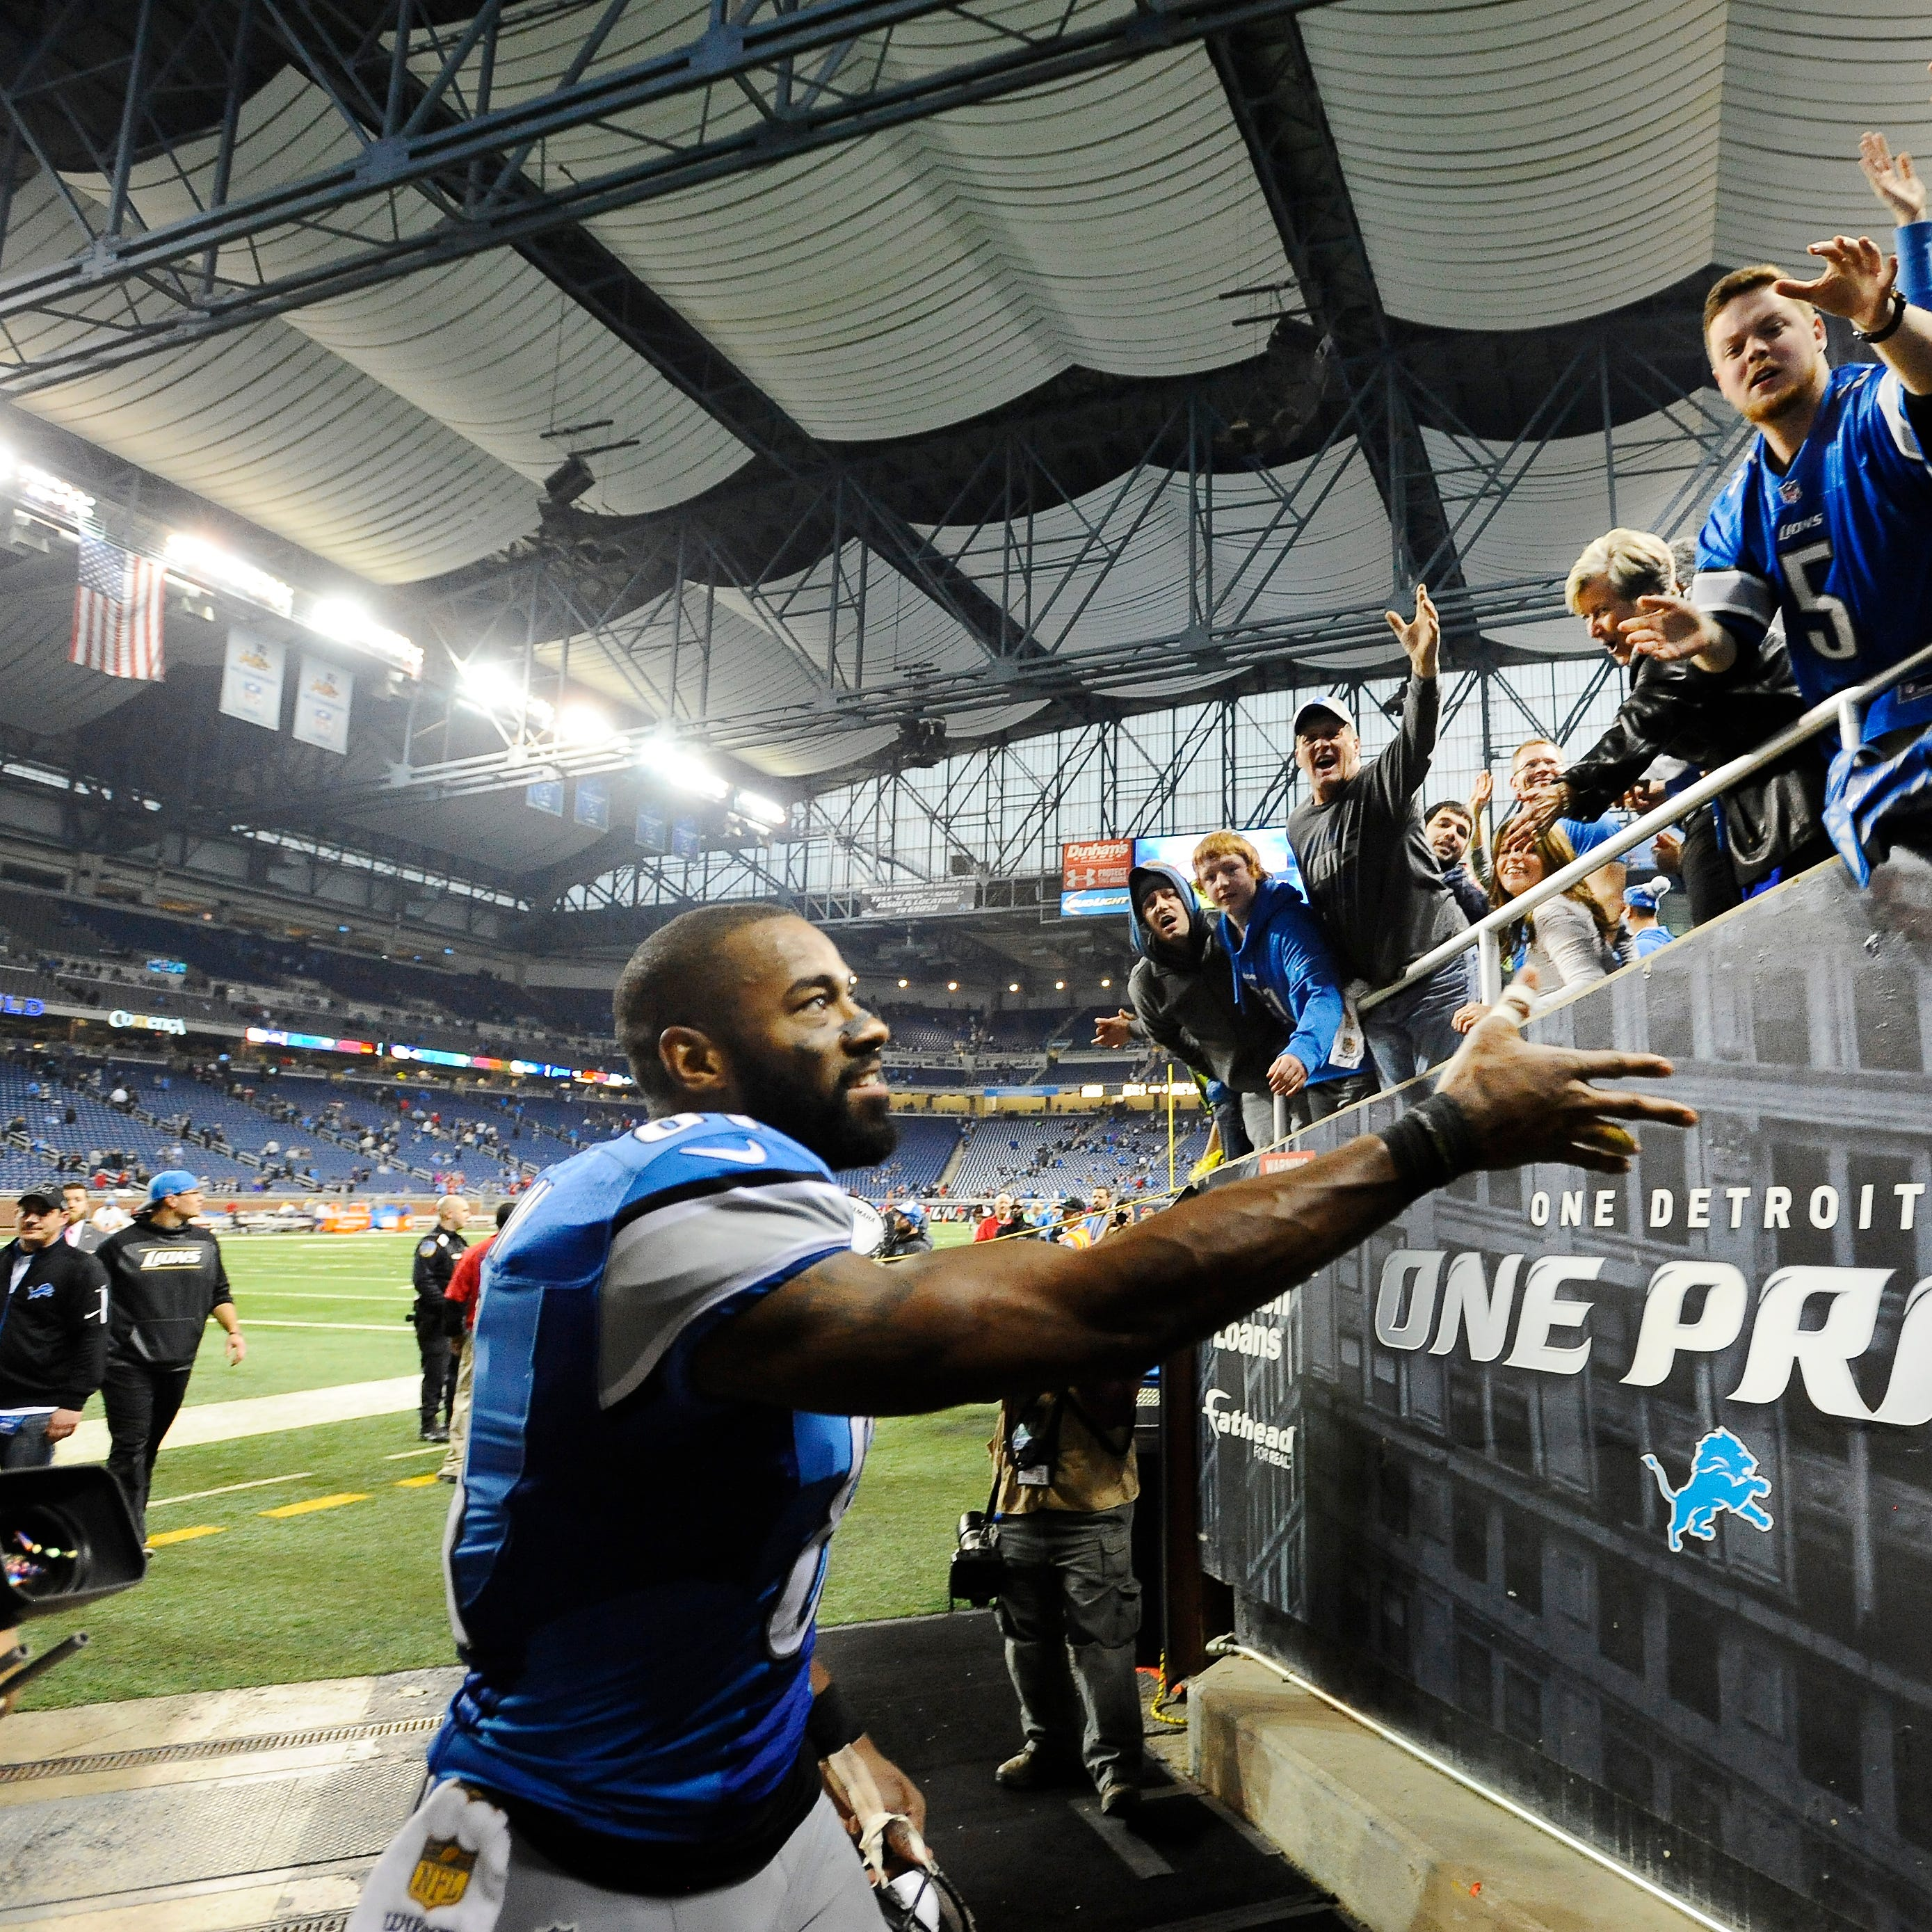 Lions' Wood: 'Very high priority' to mend fences with Calvin Johnson